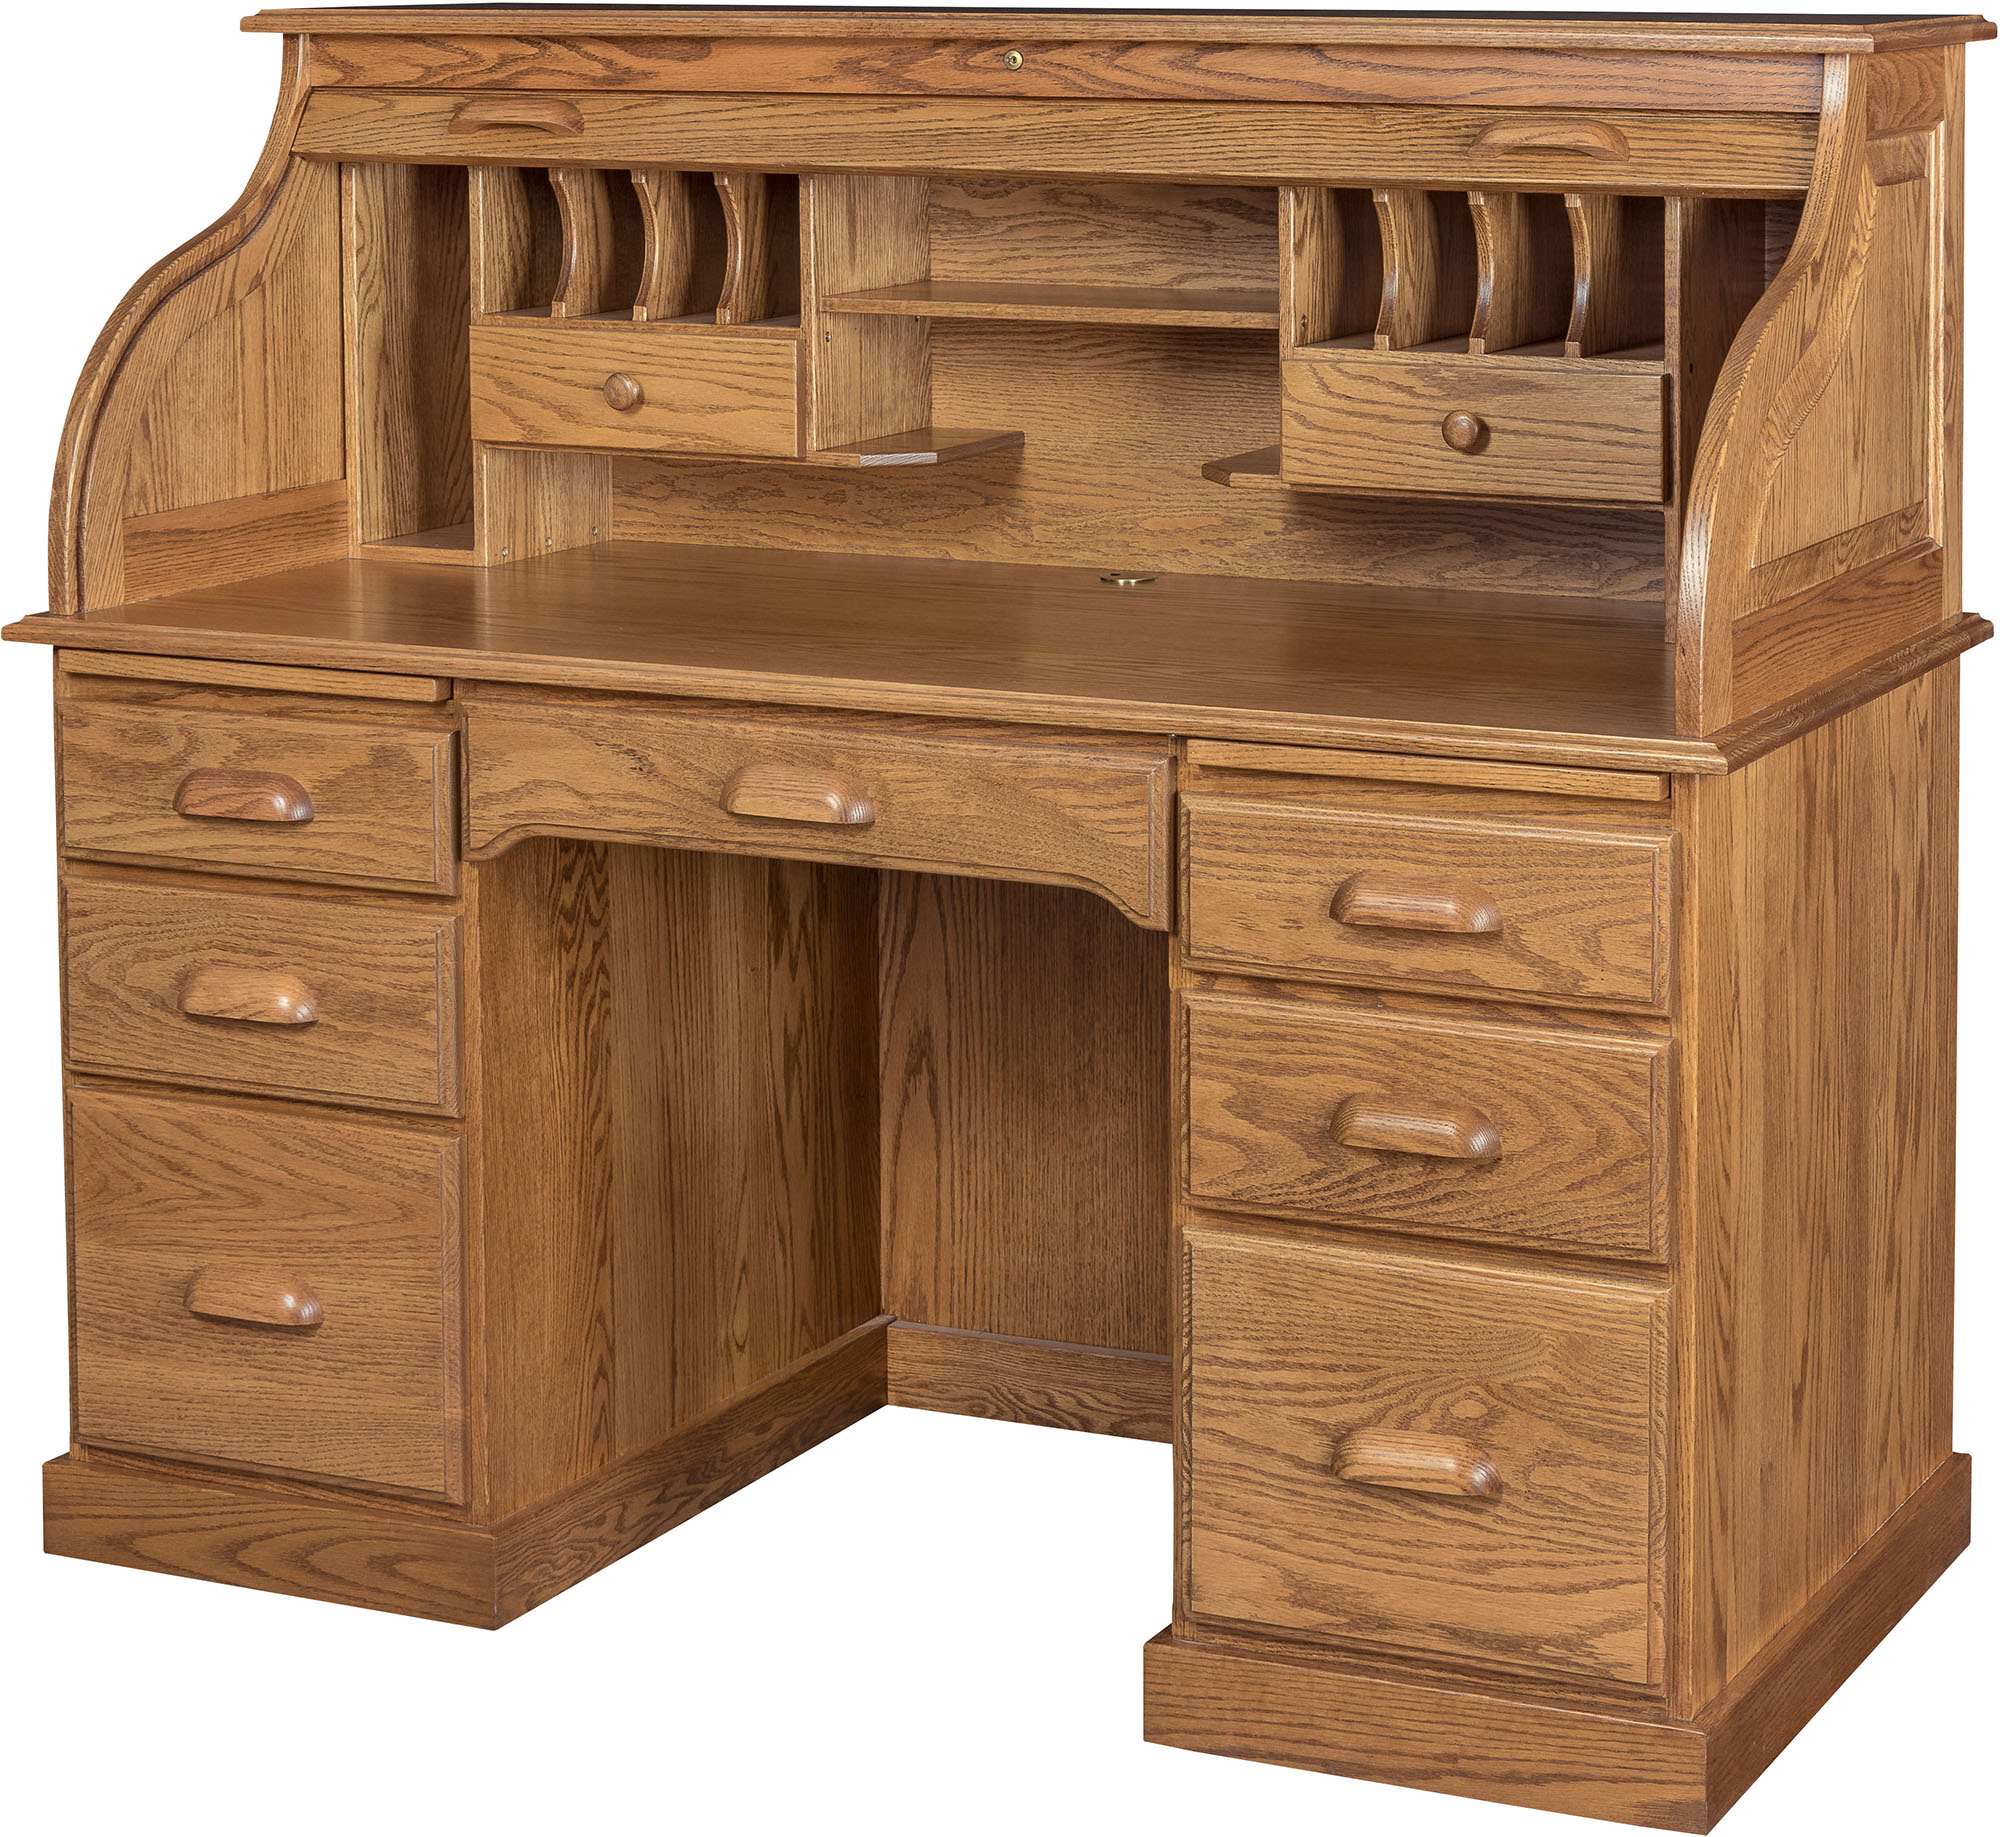 56 Inch Roll Top Desk And Hutch Amish 56 Inch Roll Top